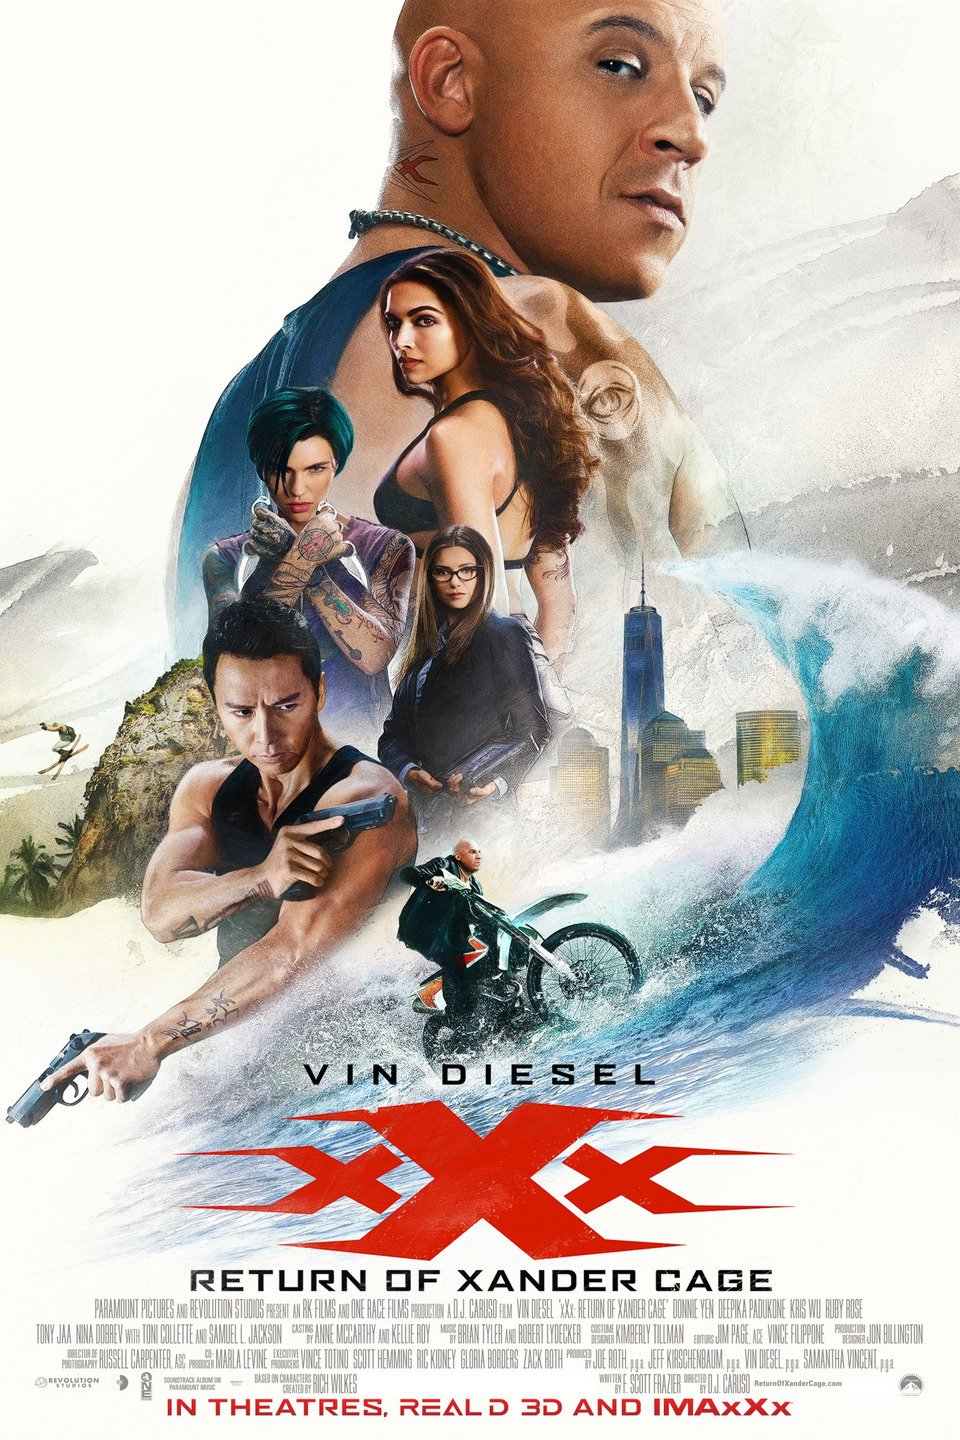 xxx-return-of-xander-cage-3d